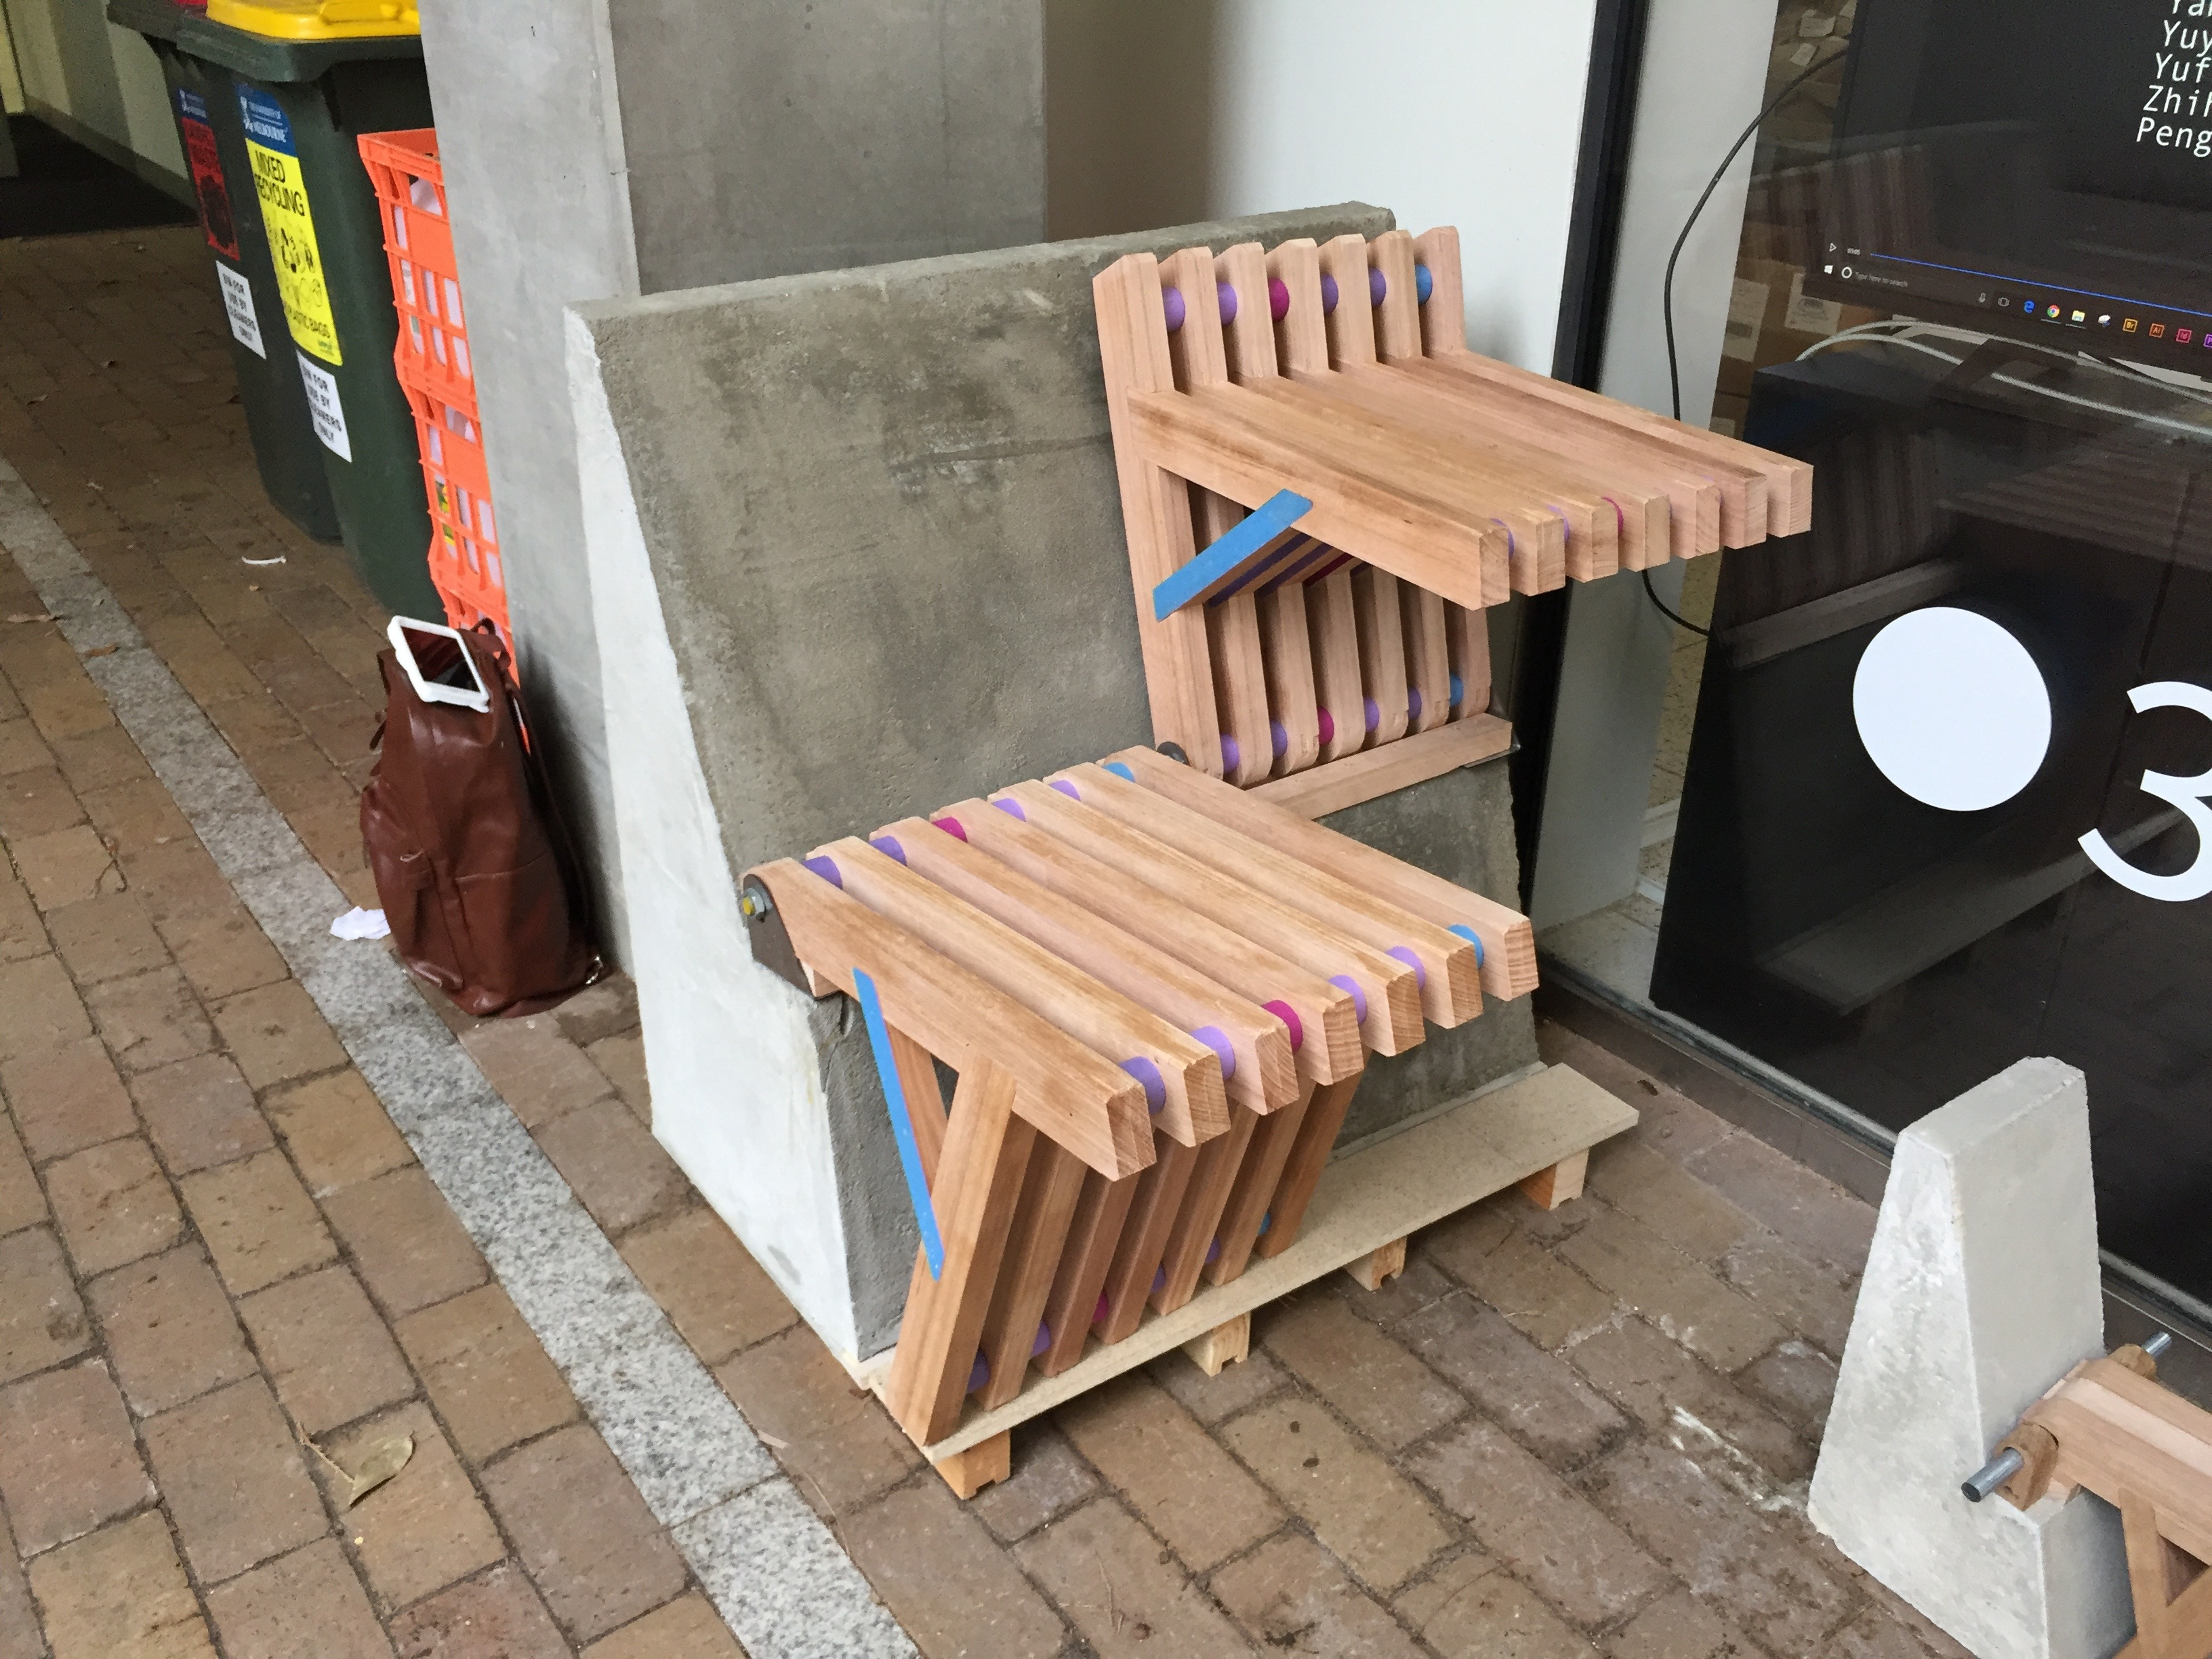 Photograph of completed prototype for the Flip Flop seat and bench